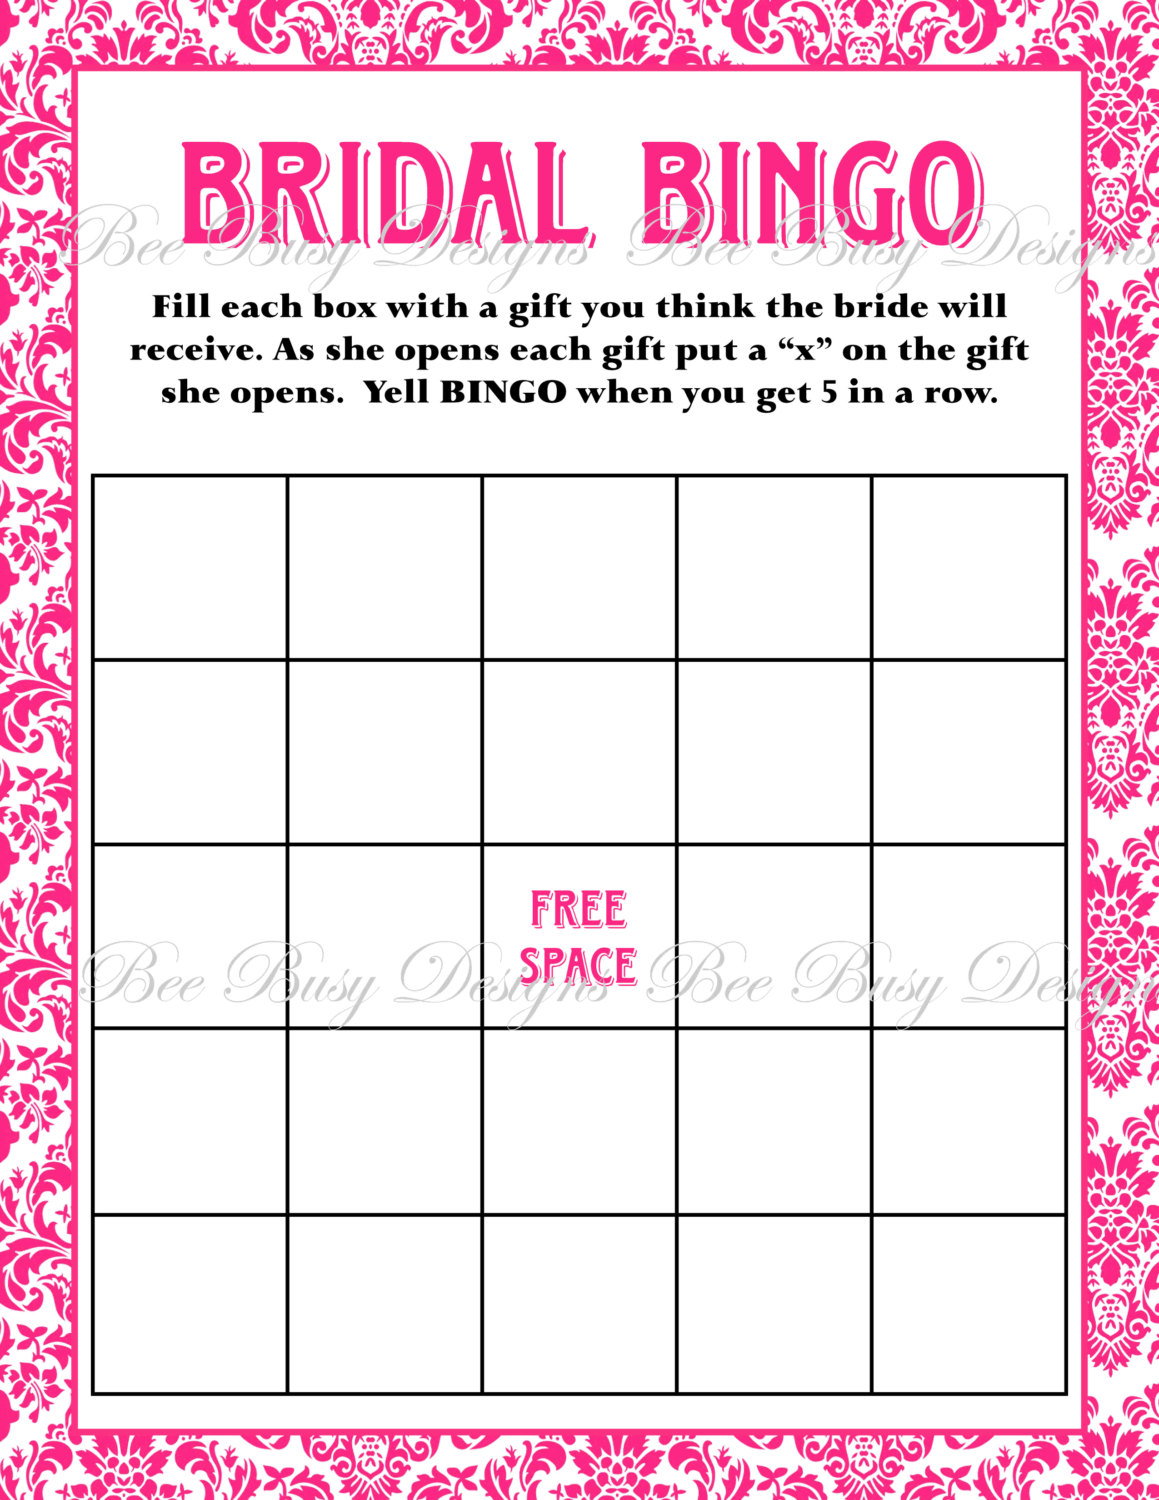 bridal shower games bingo free printables 270941 Top Result 60 Best Of Templates for Bridal Shower Games Pic 2017 Phe2